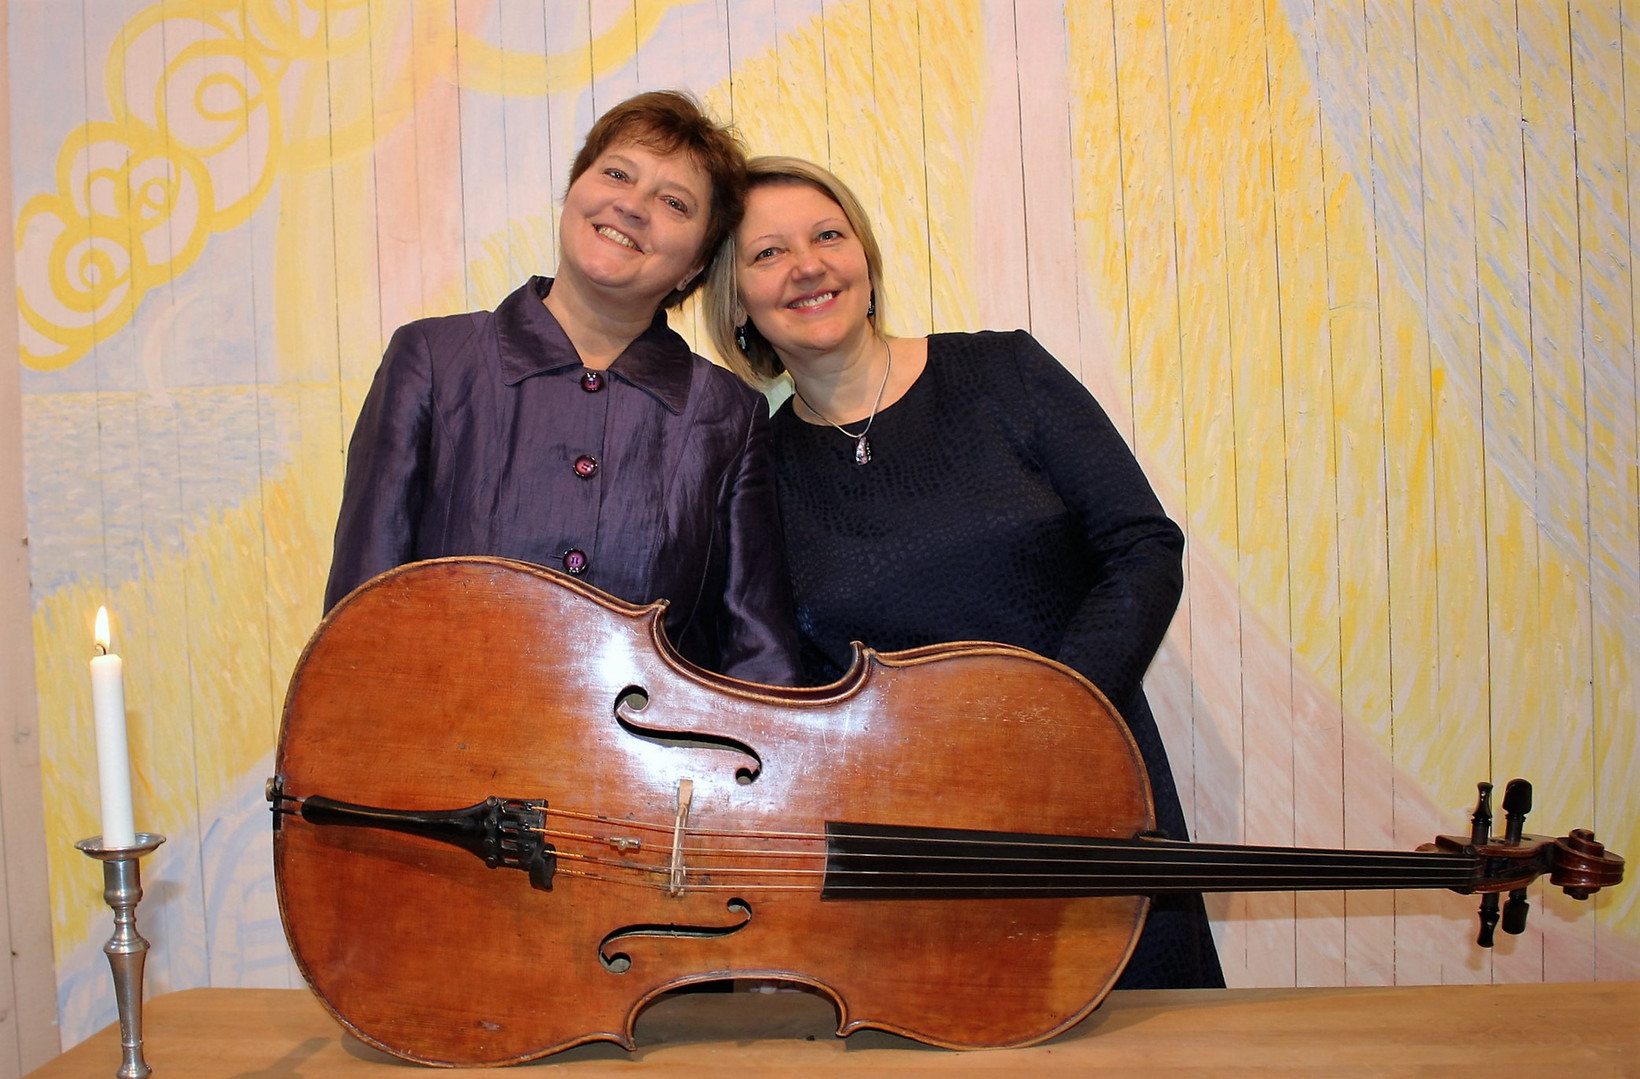 With cellist Lolita Lilje